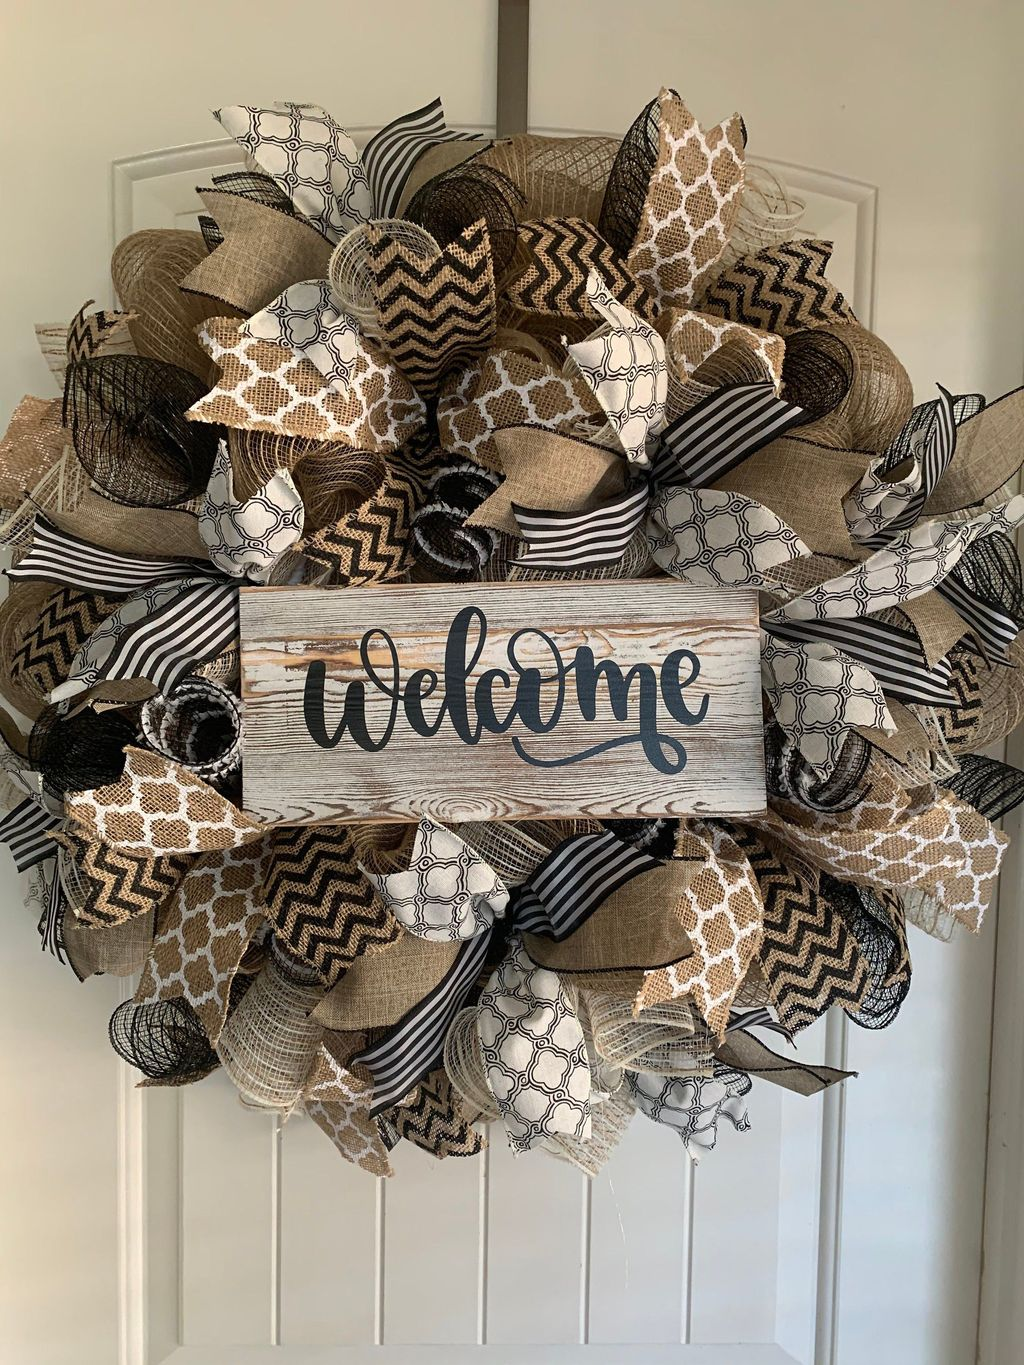 Inspiring Summer Wreath Design Ideas You Should Copy 07